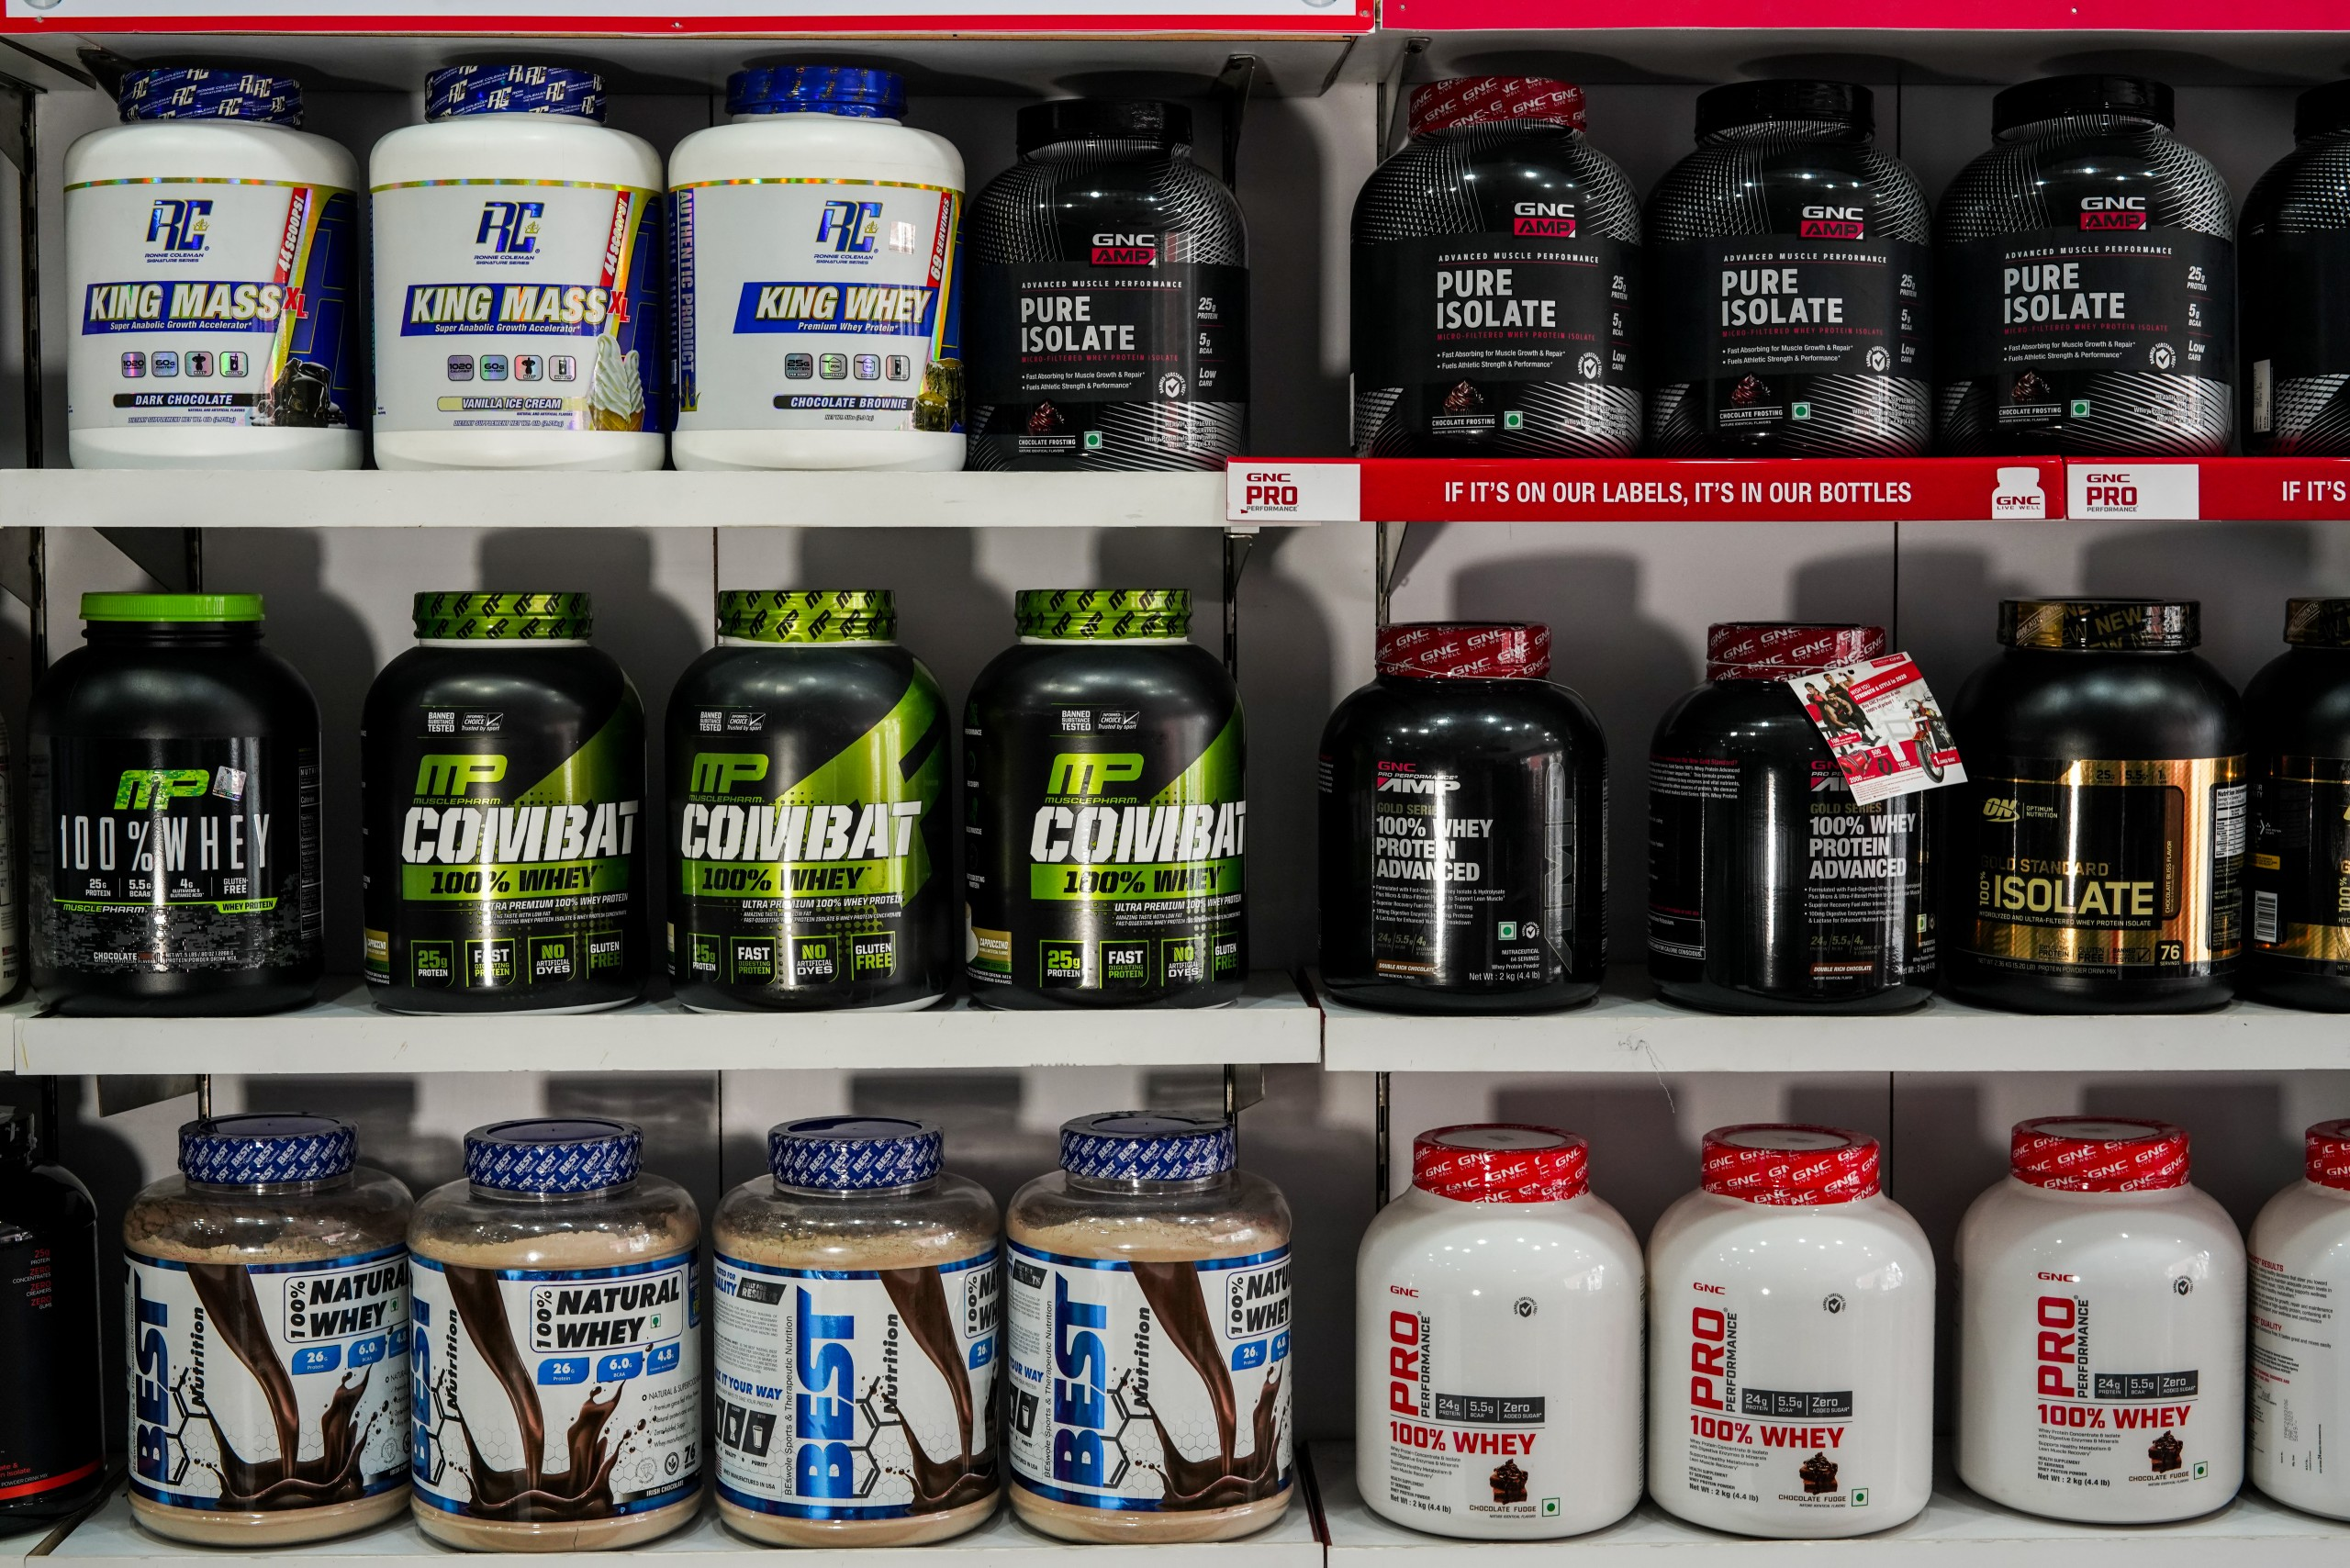 Flavours of Boost Supplements